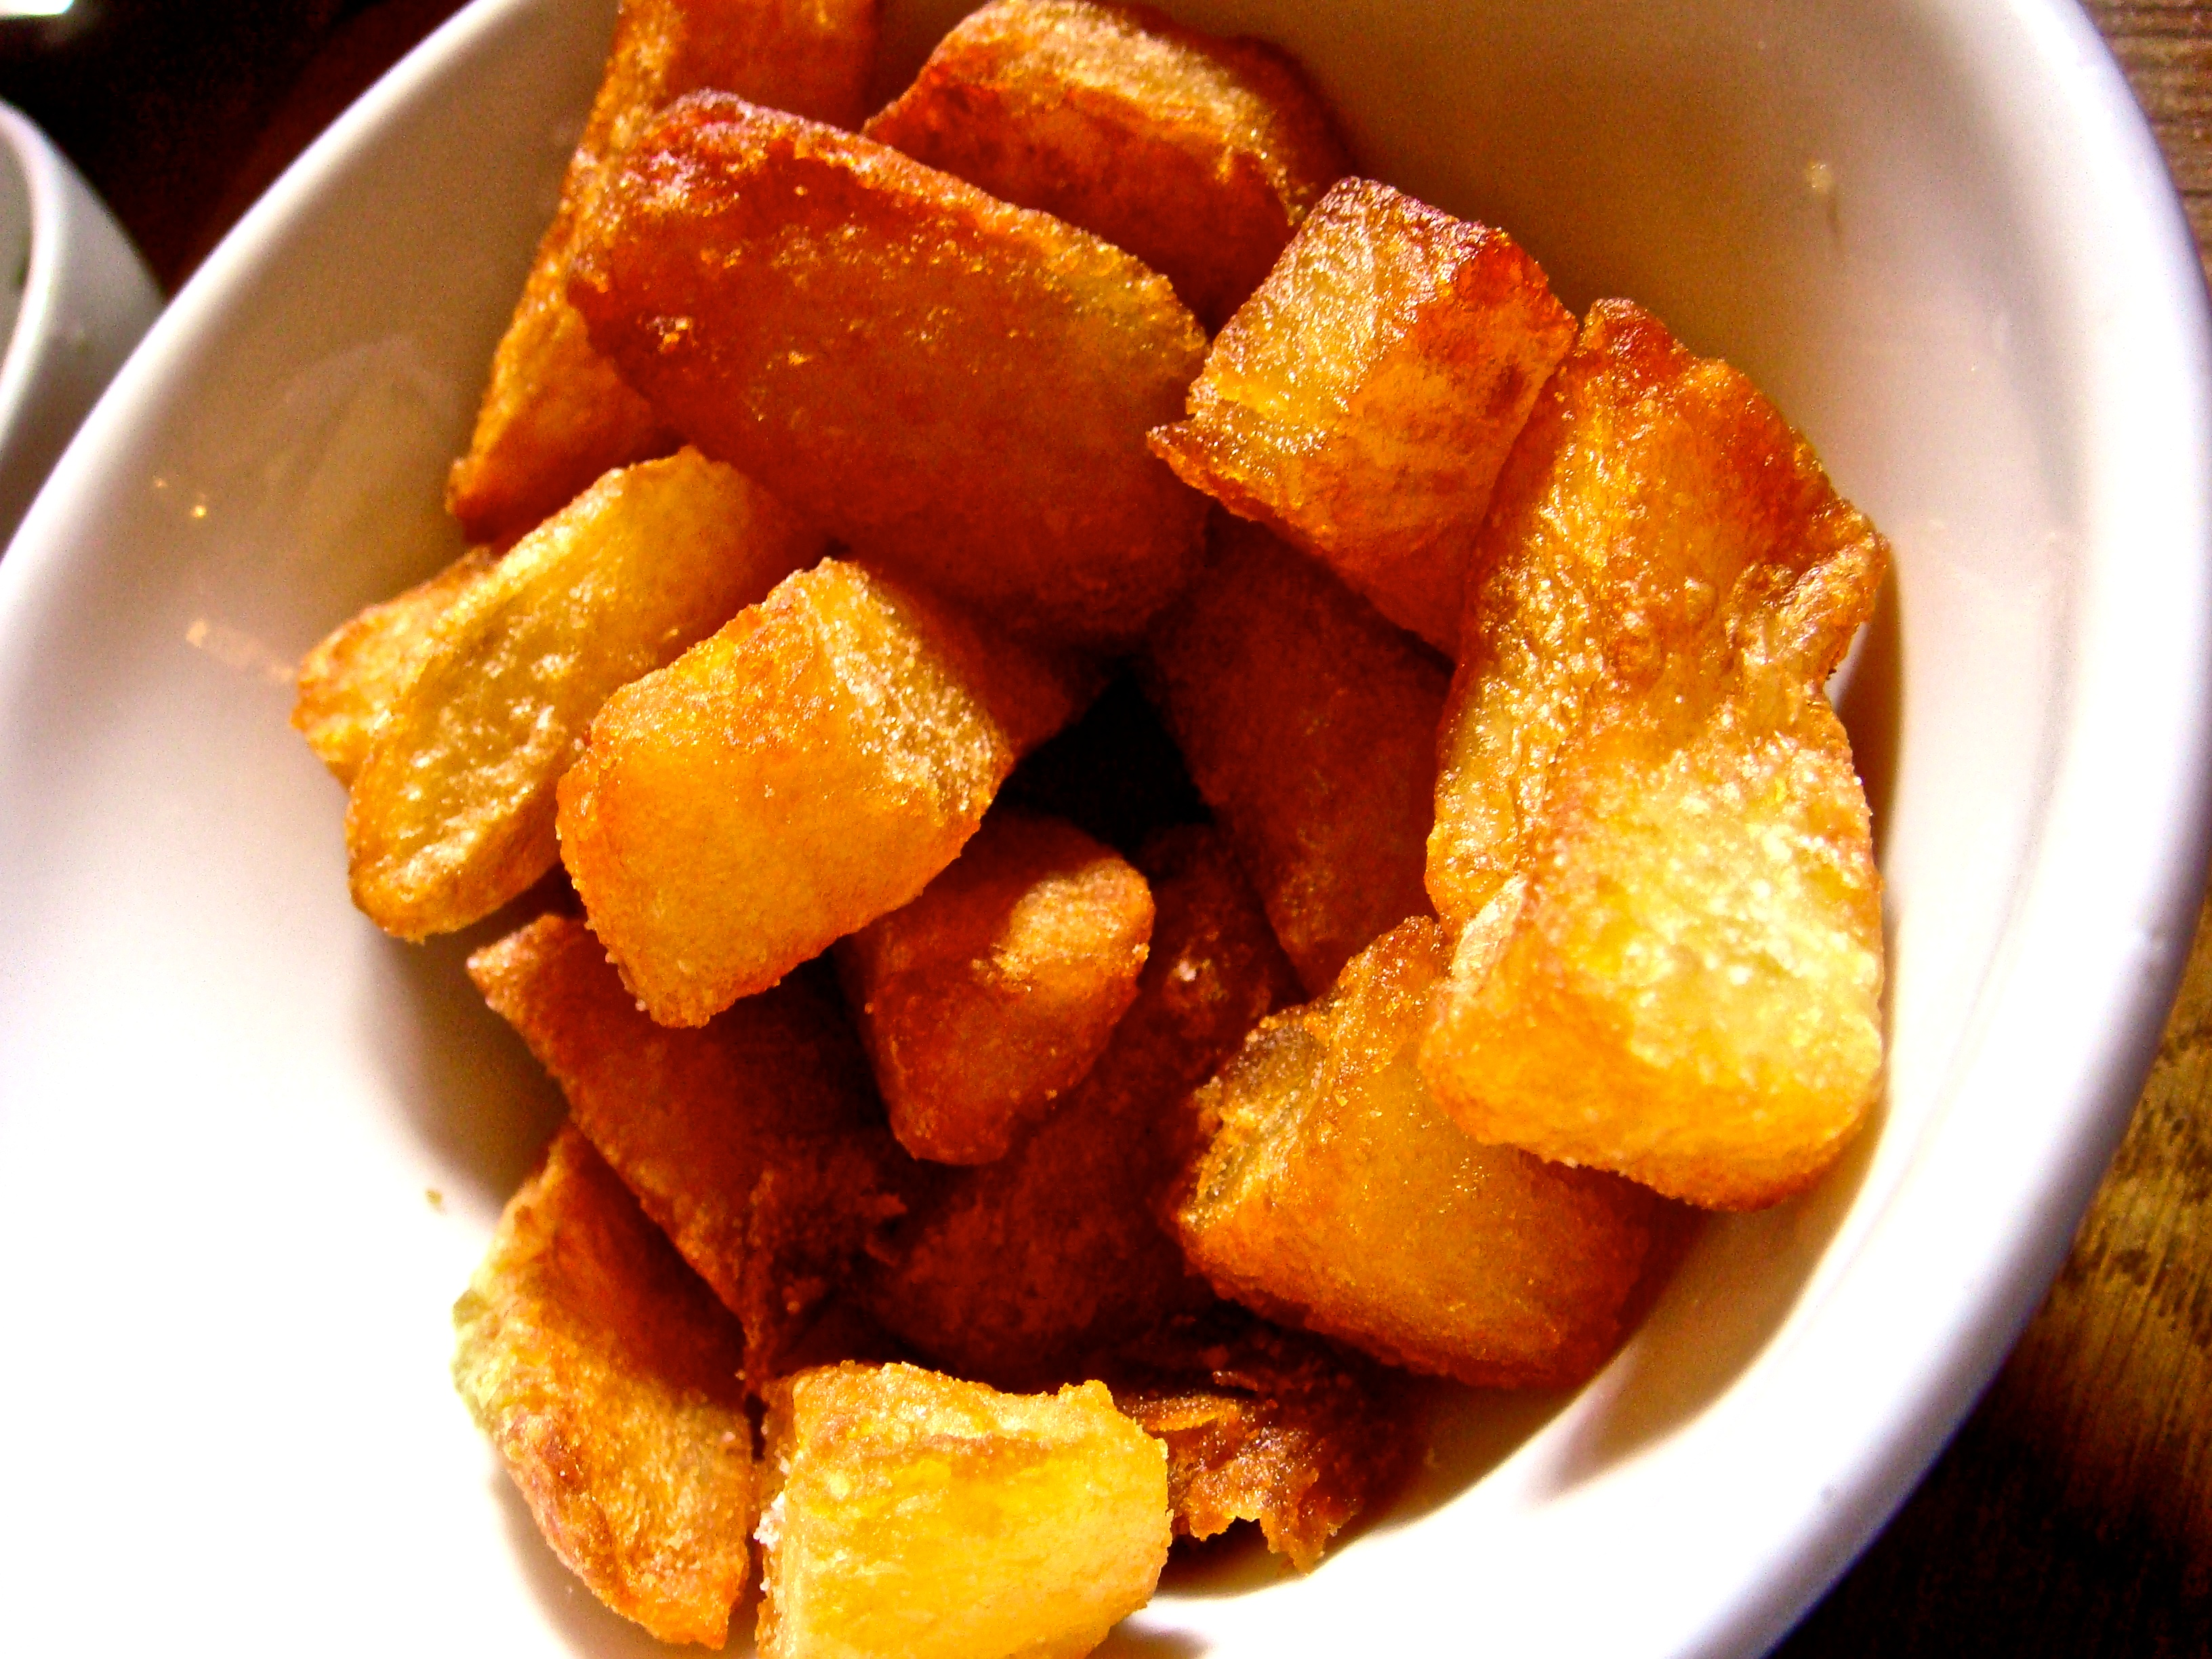 File:Triple Cooked Chips.jpg - Wikimedia Commons